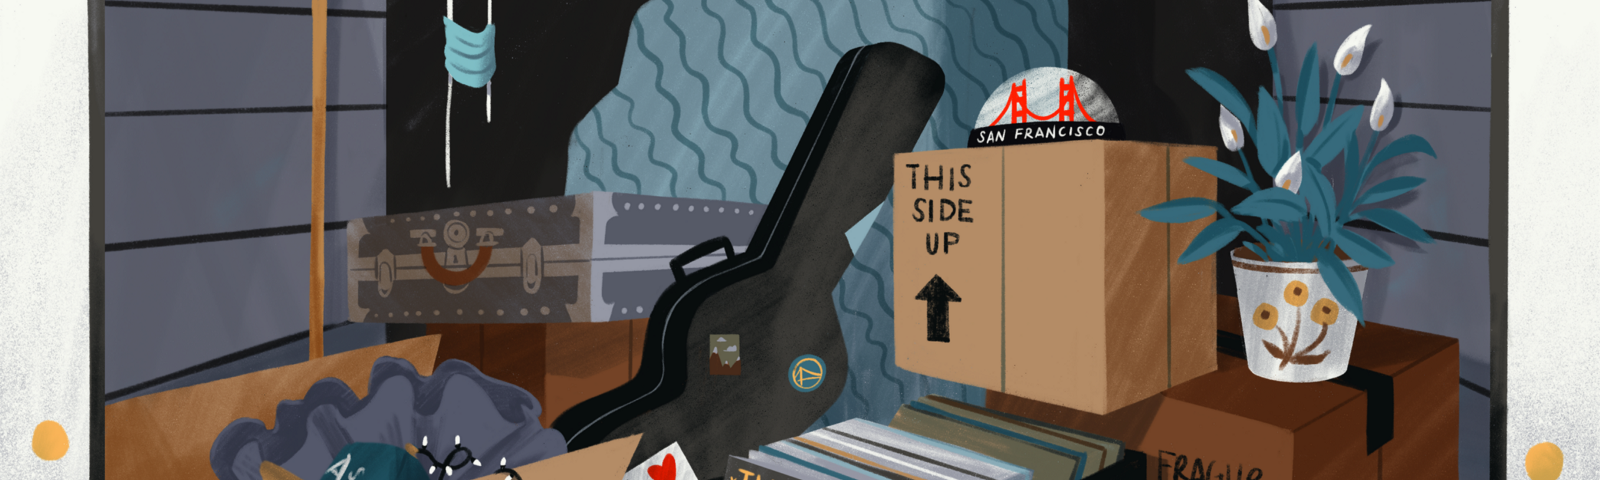 Illustration of in the inside of a garage, with lots of personal belongings in boxes.